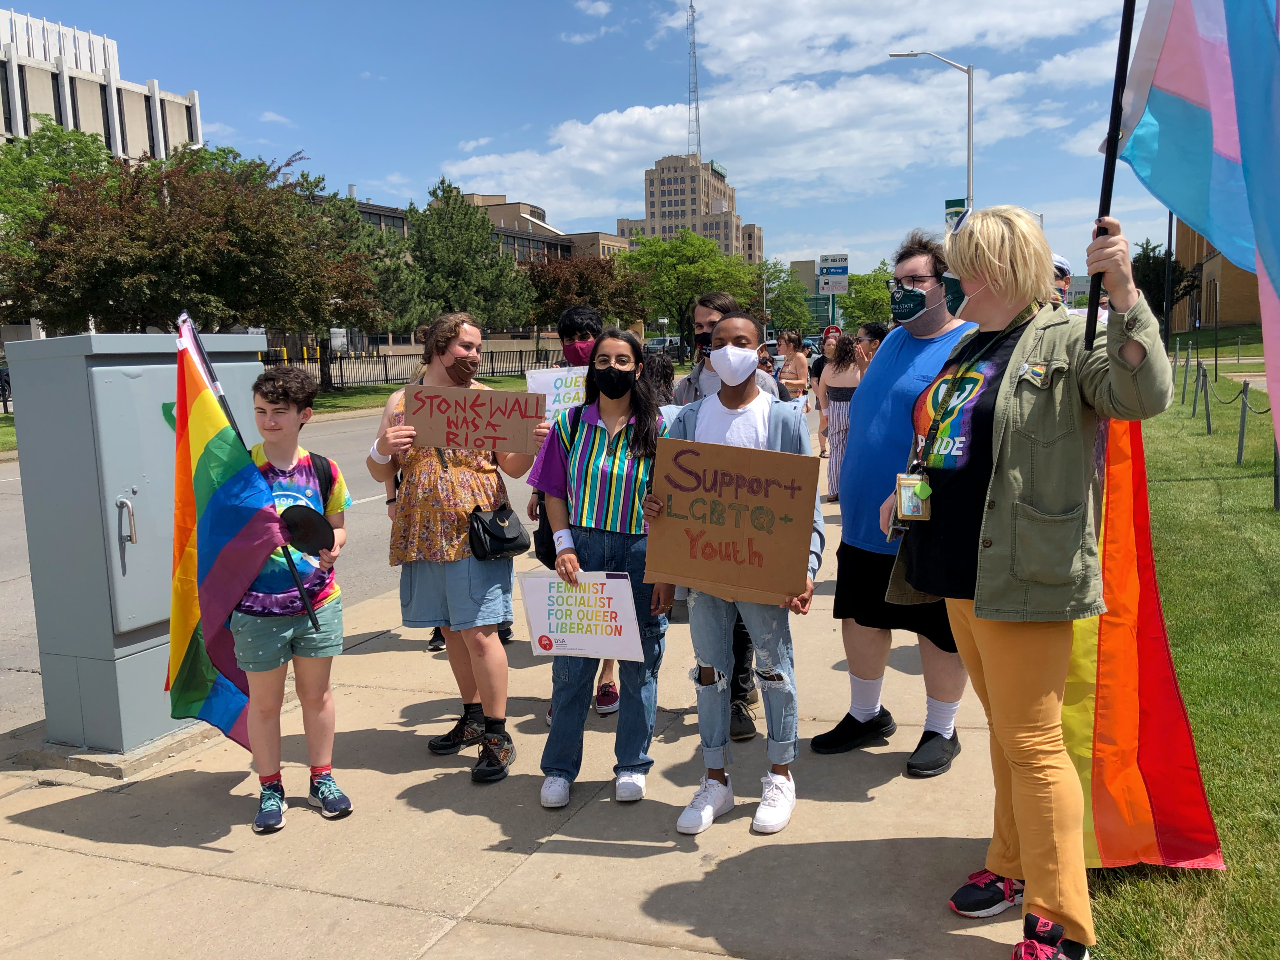 Students and staff march at the Stride for Pride walk on campus - June 2021